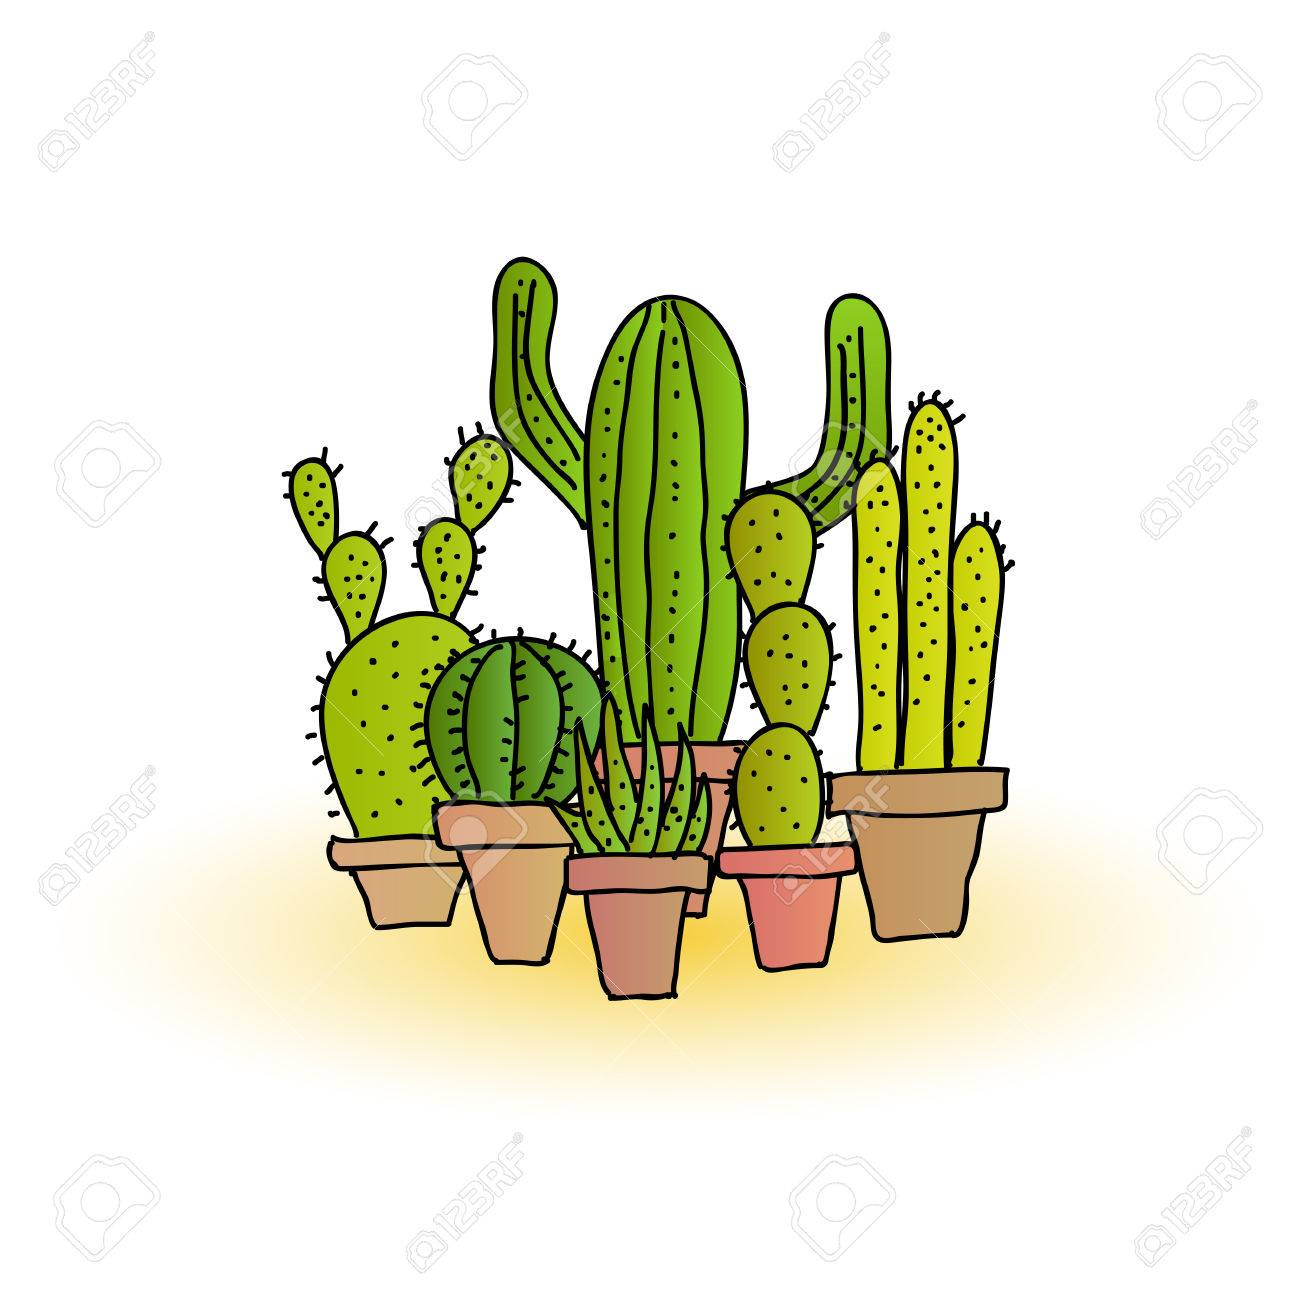 Cactus Planting Pots Collection Of Hand Drawn Cartoon Cacti Plants In Plant Pots